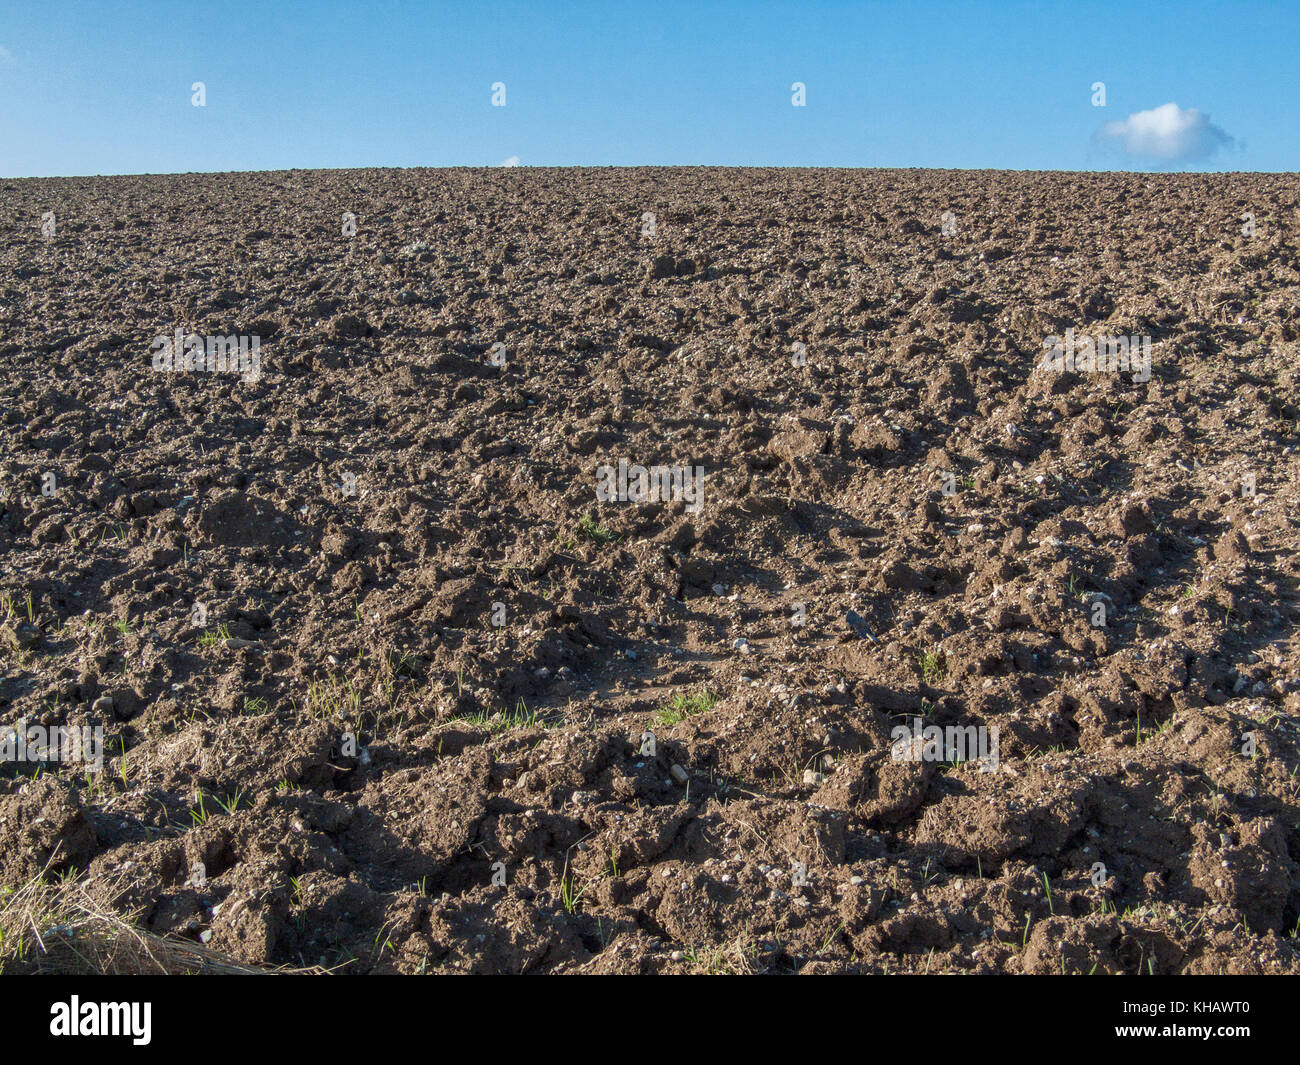 Sloping ploughed field against an autumnal blue sky. Metaphor for food security / growing food. - Stock Image